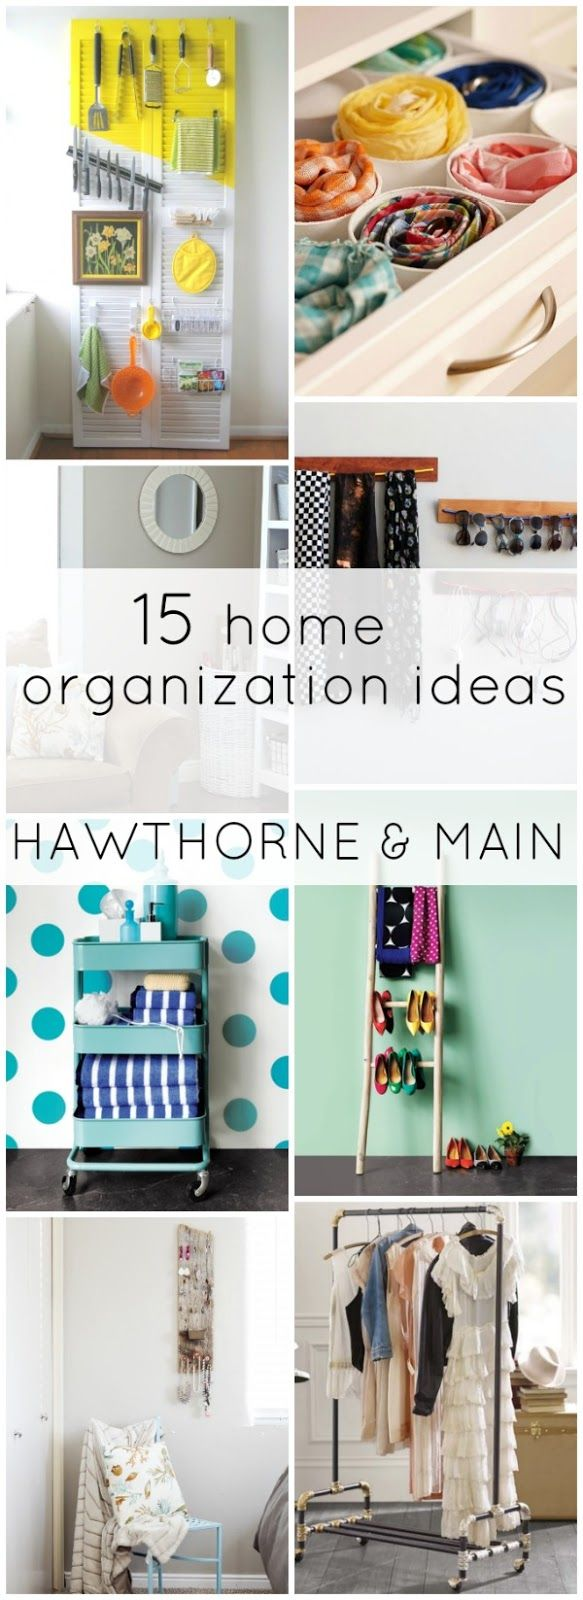 200+ best Getting Organized images on Pinterest | Cubicles ...